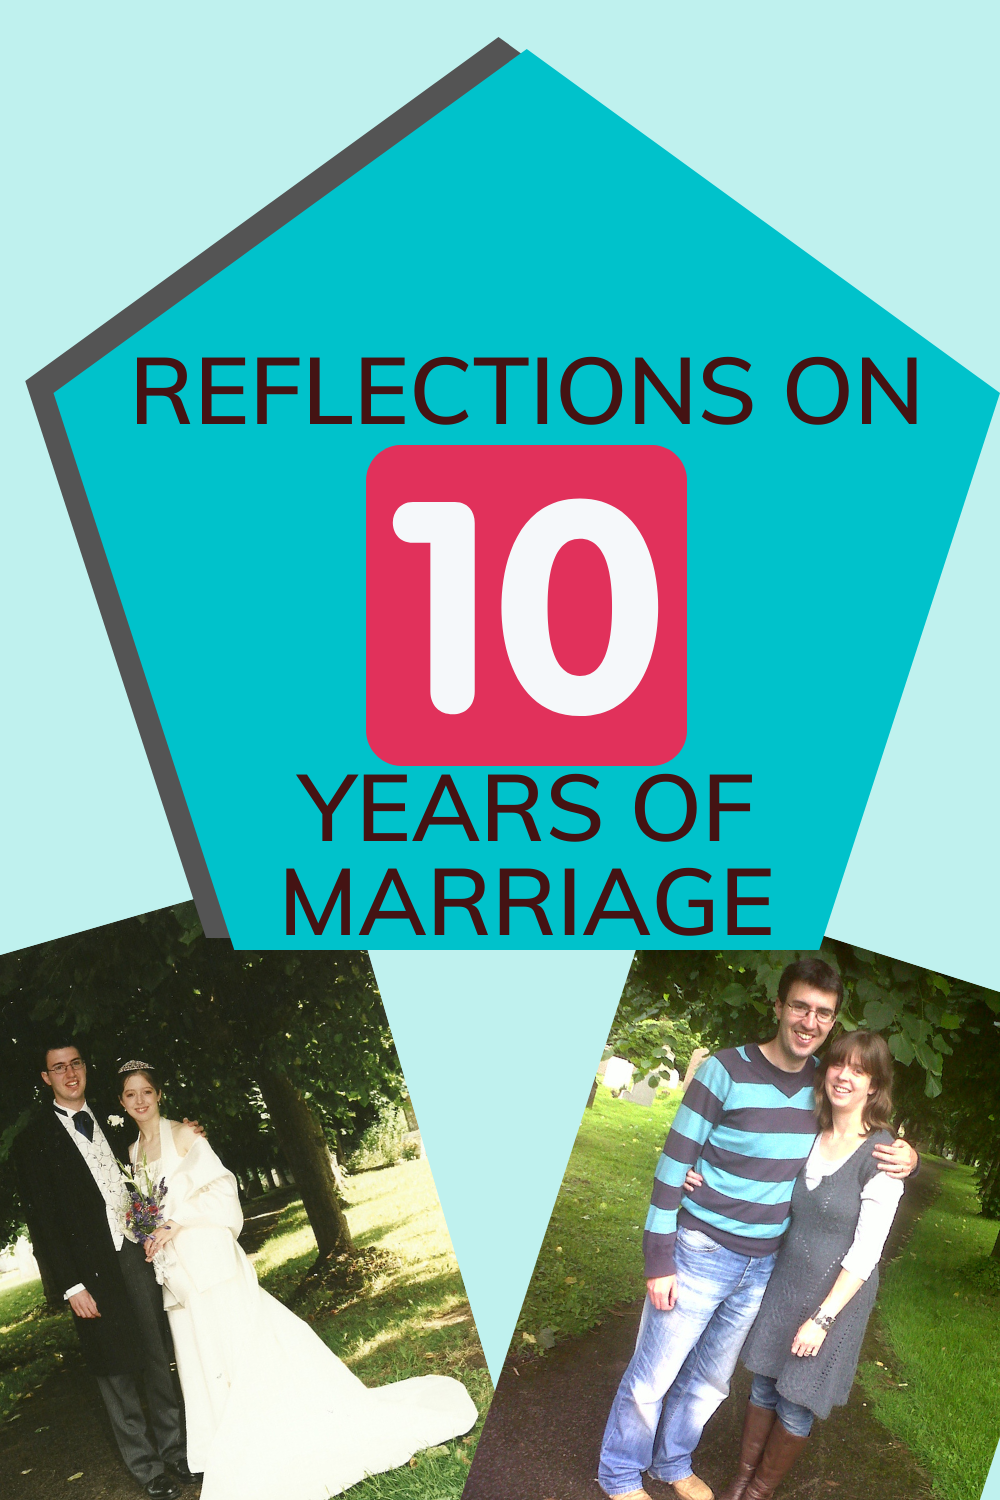 Reflections on 10 years of marriage. How do you sustain and grow a marriage relationship over time?